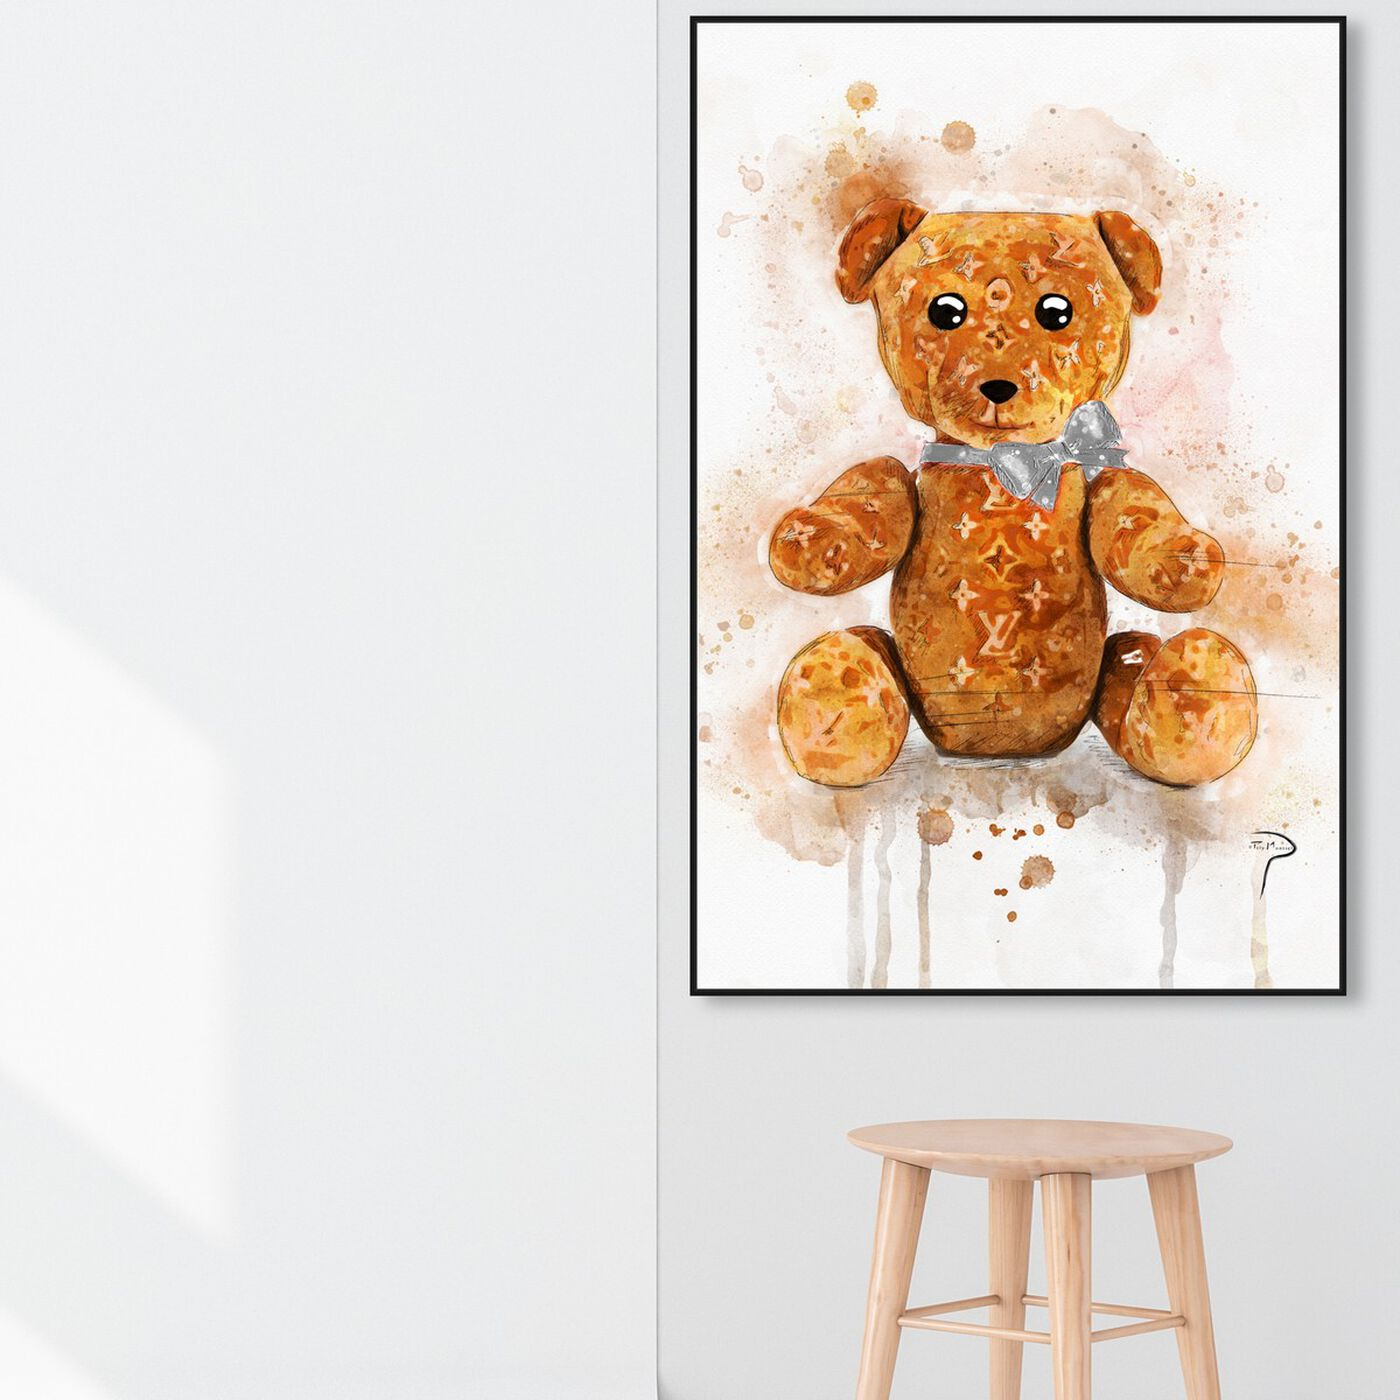 Hanging view of Pily Montiel - Teddy Bear featuring symbols and objects and toys art.